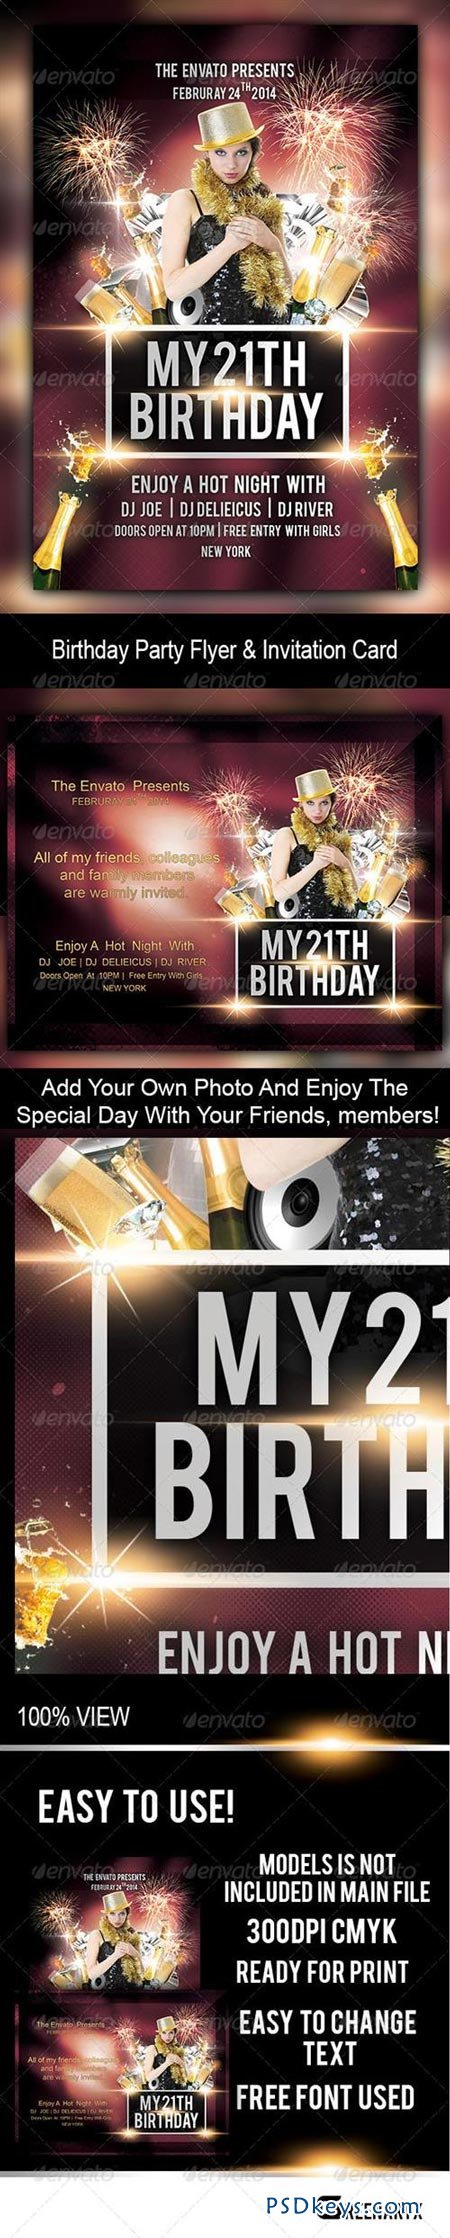 birthday party flyer and invitation card photoshop birthday party flyer and invitation card